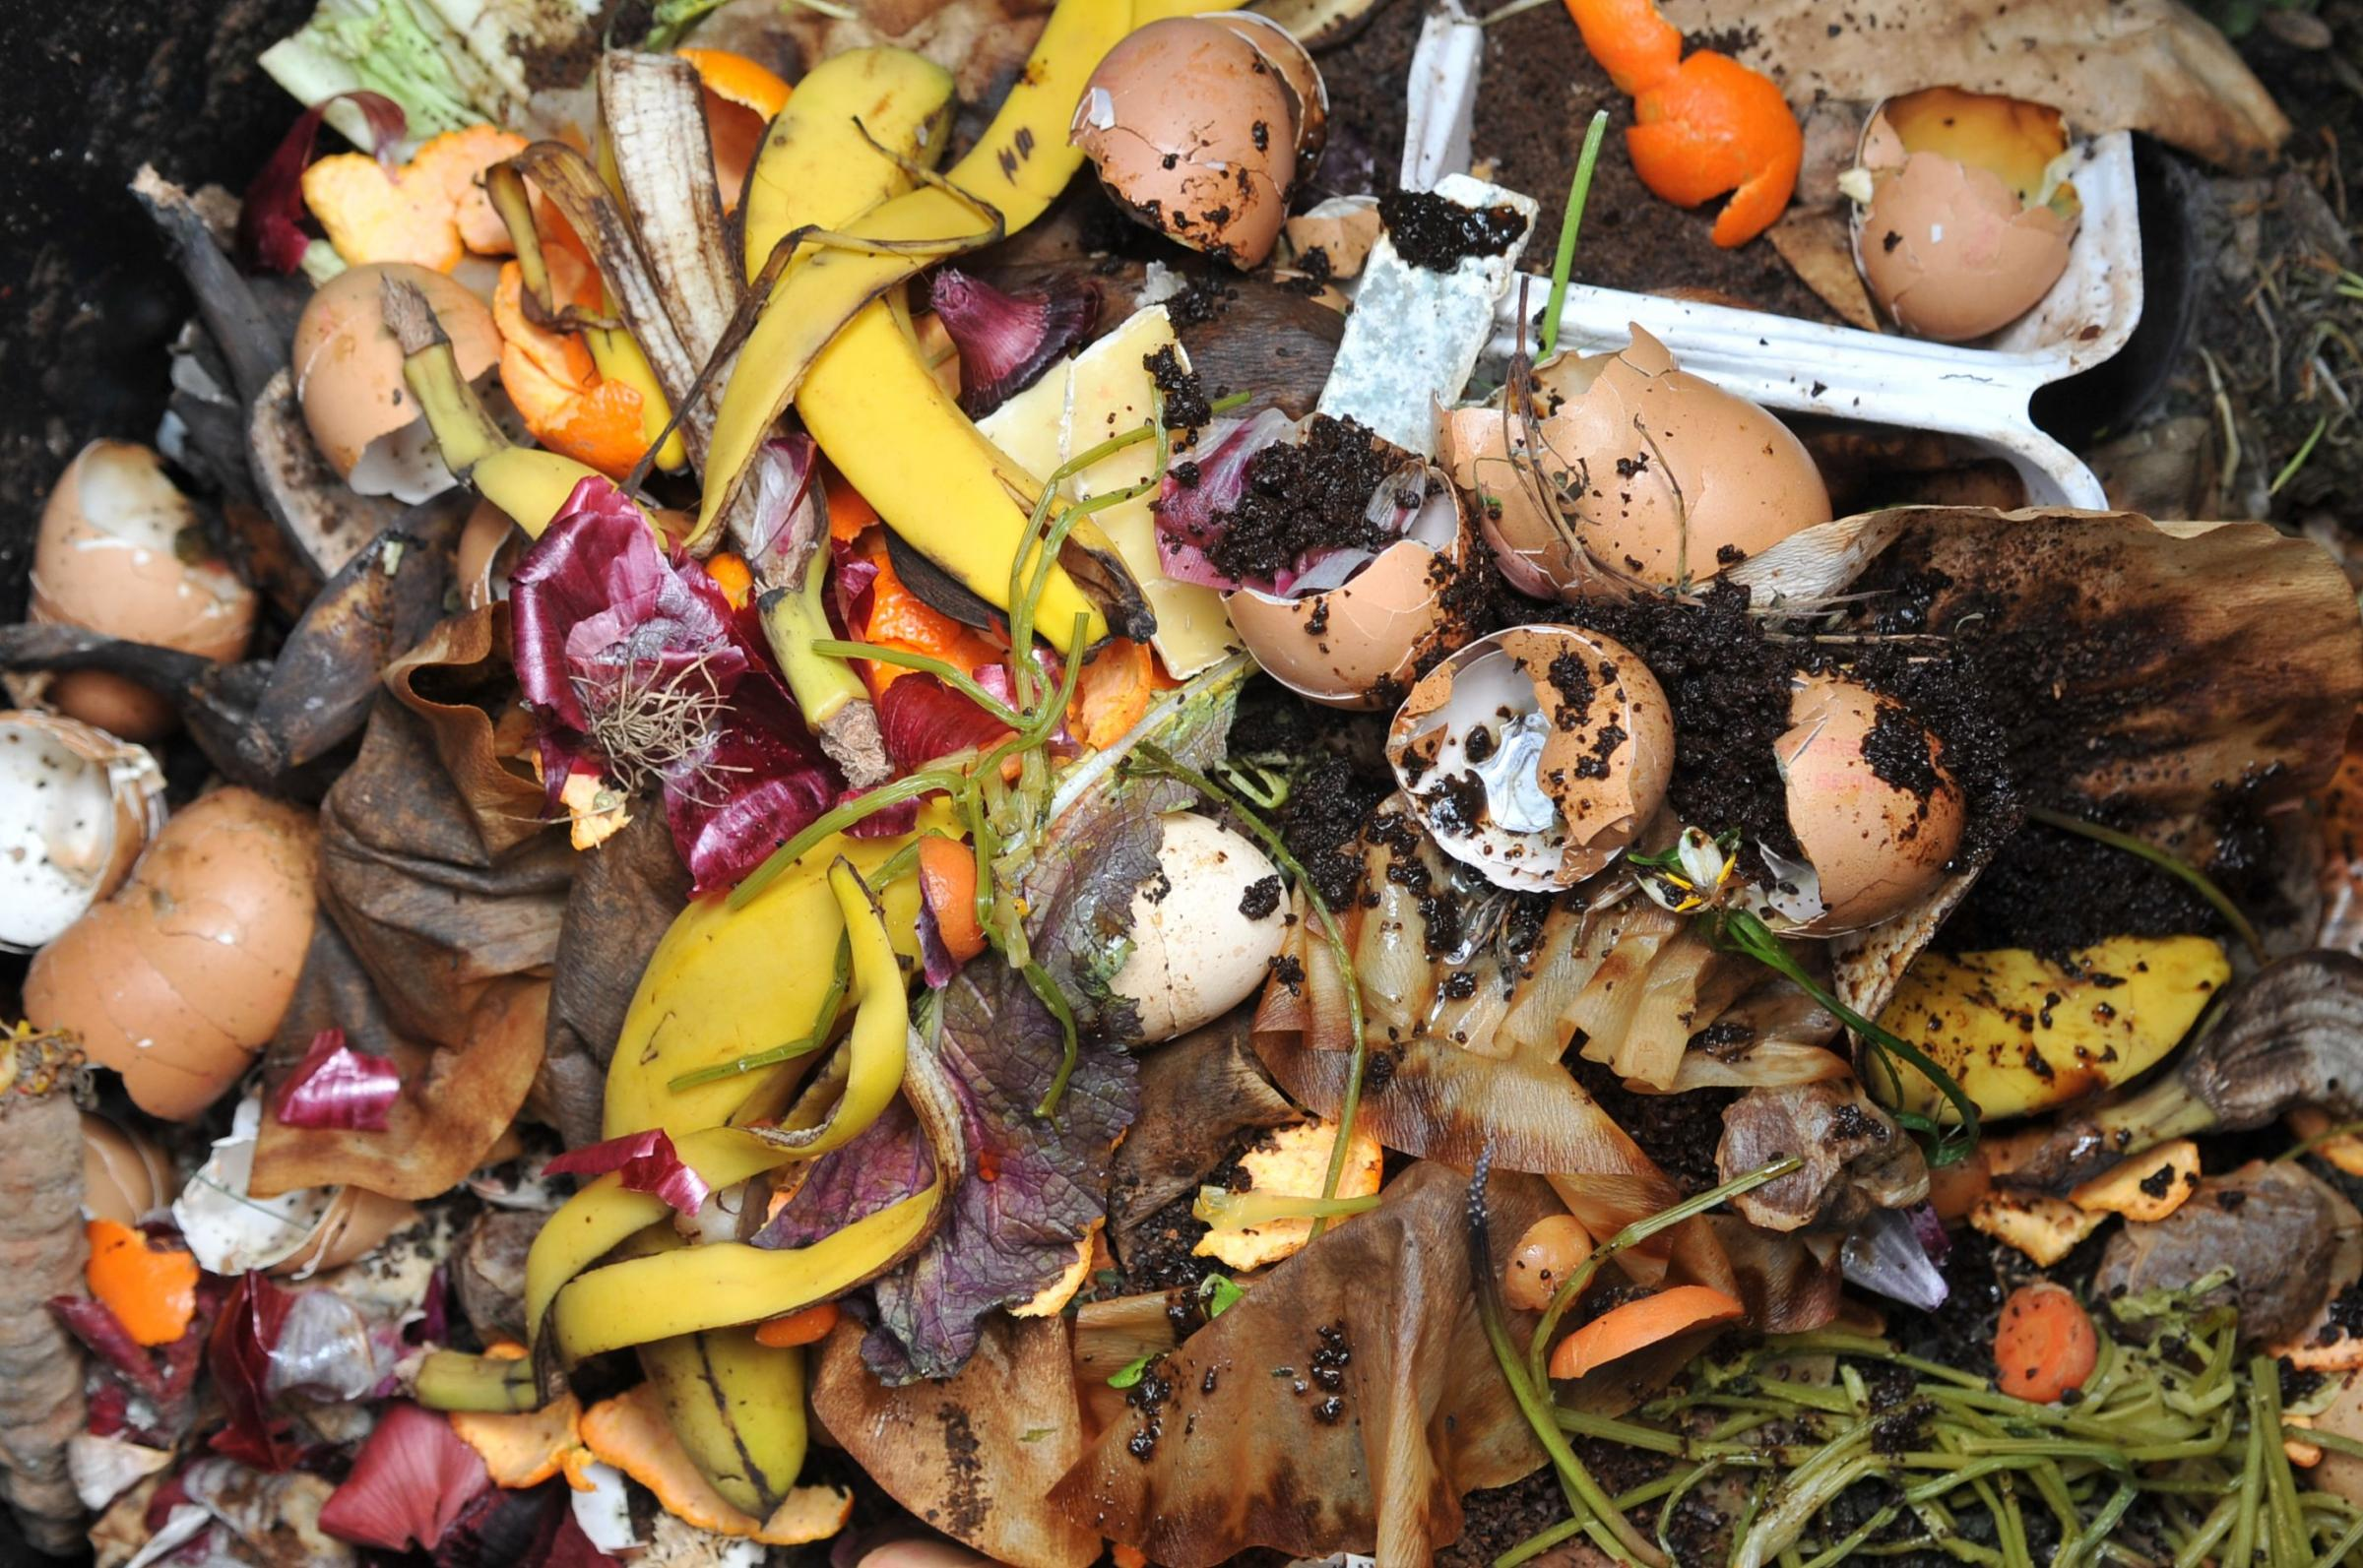 Plan to bring in food waste collections